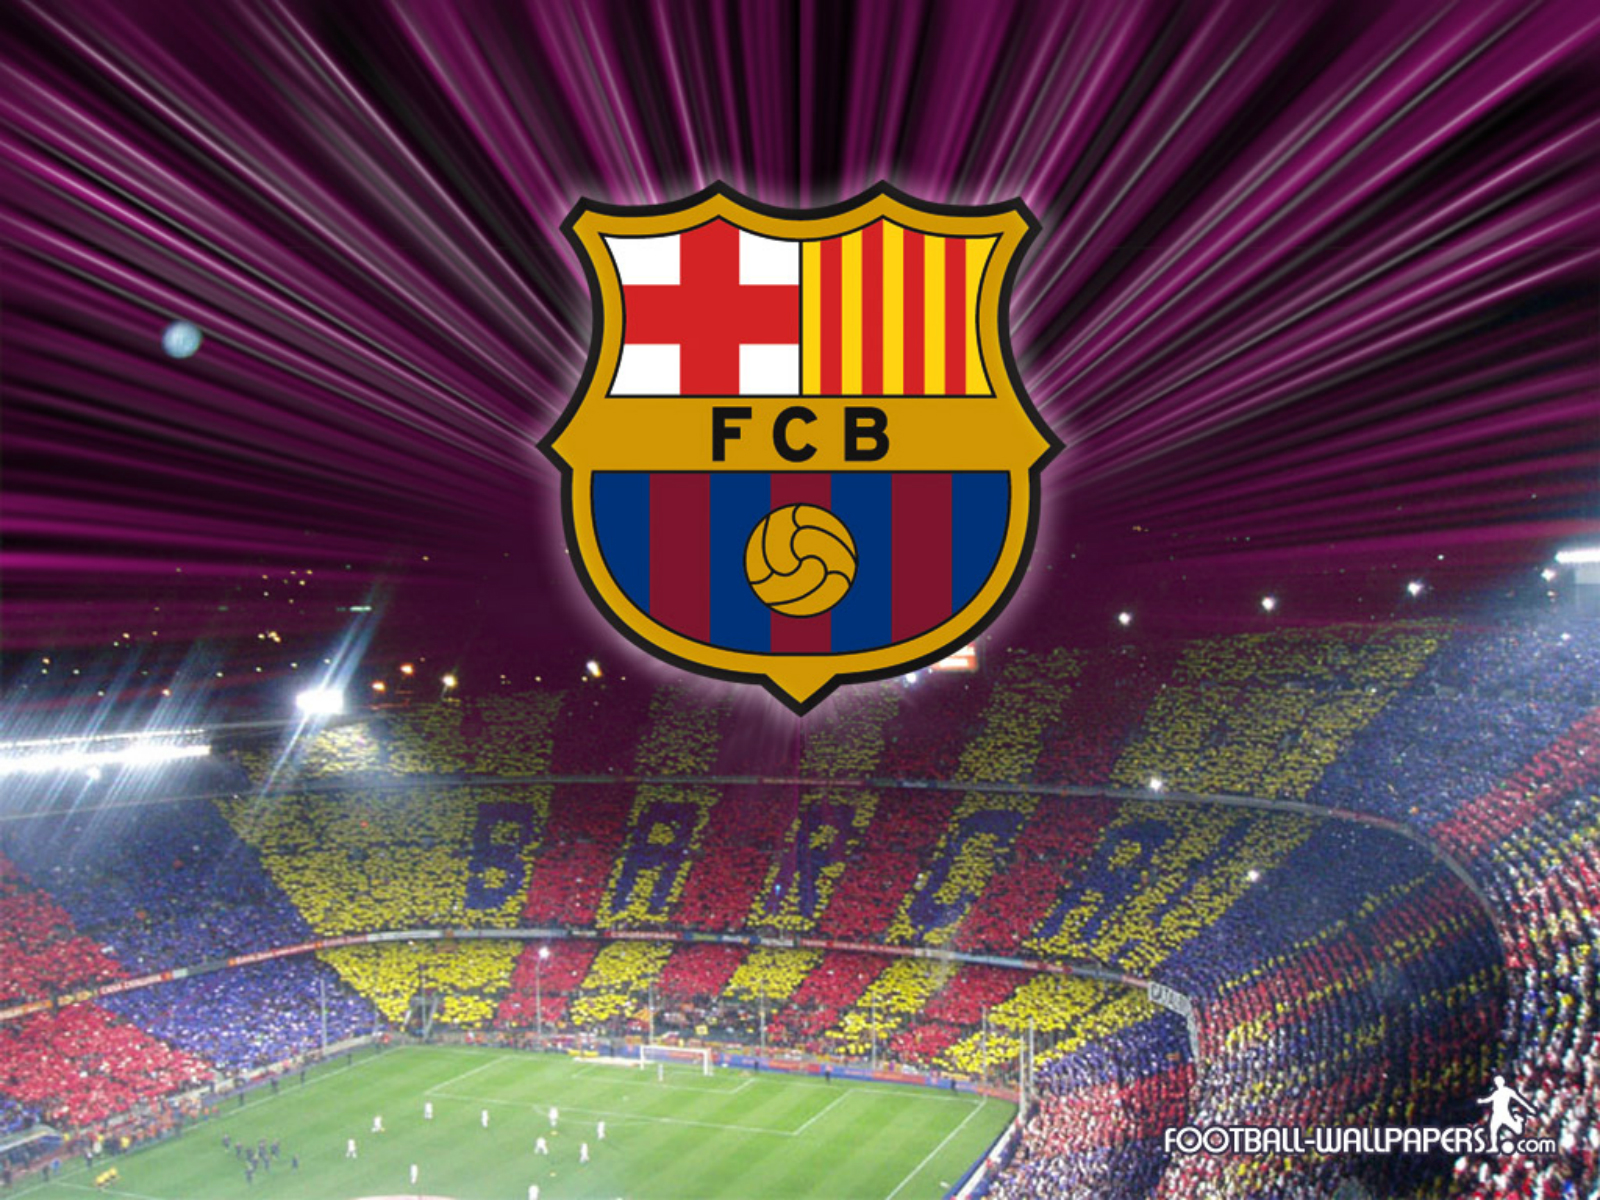 http://2.bp.blogspot.com/-kl54O5STtVU/Tlb0vBA_gwI/AAAAAAAAAo8/lv2D5J7DbRg/s1600/vvallpaper.net_barcelona_nou_camp_stadium_1600x1200_high_definition_high_resolution_.jpg